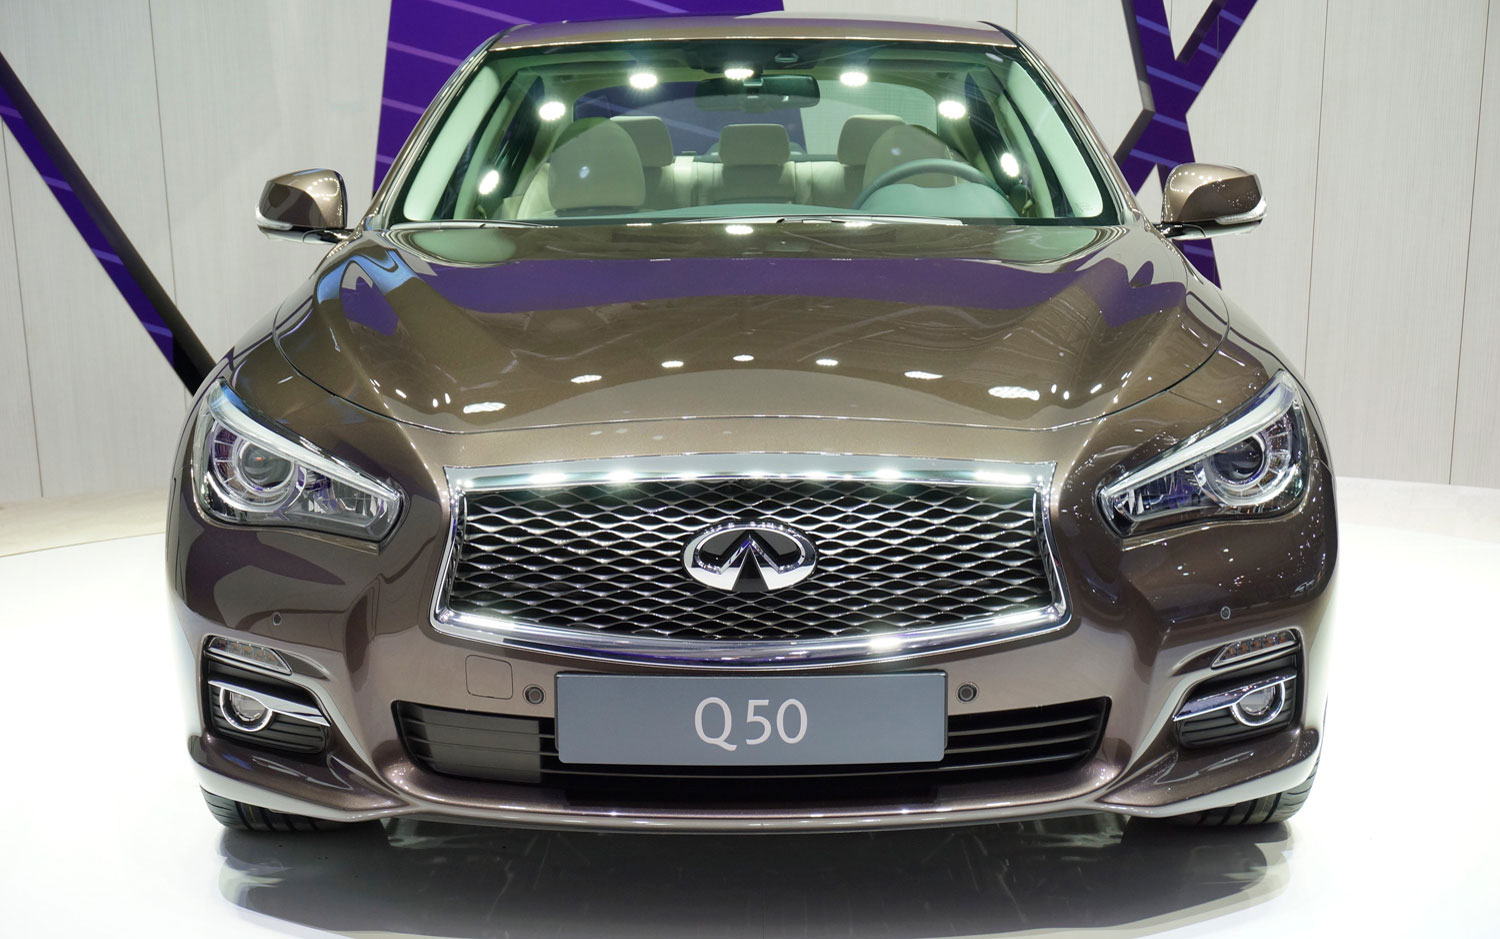 2014 infiniti q50 debuts in geneva with diesel manual transmission rh ads rds blogspot com 2014 Mercedes Manual Transmission 2014 Mercedes Manual Transmission